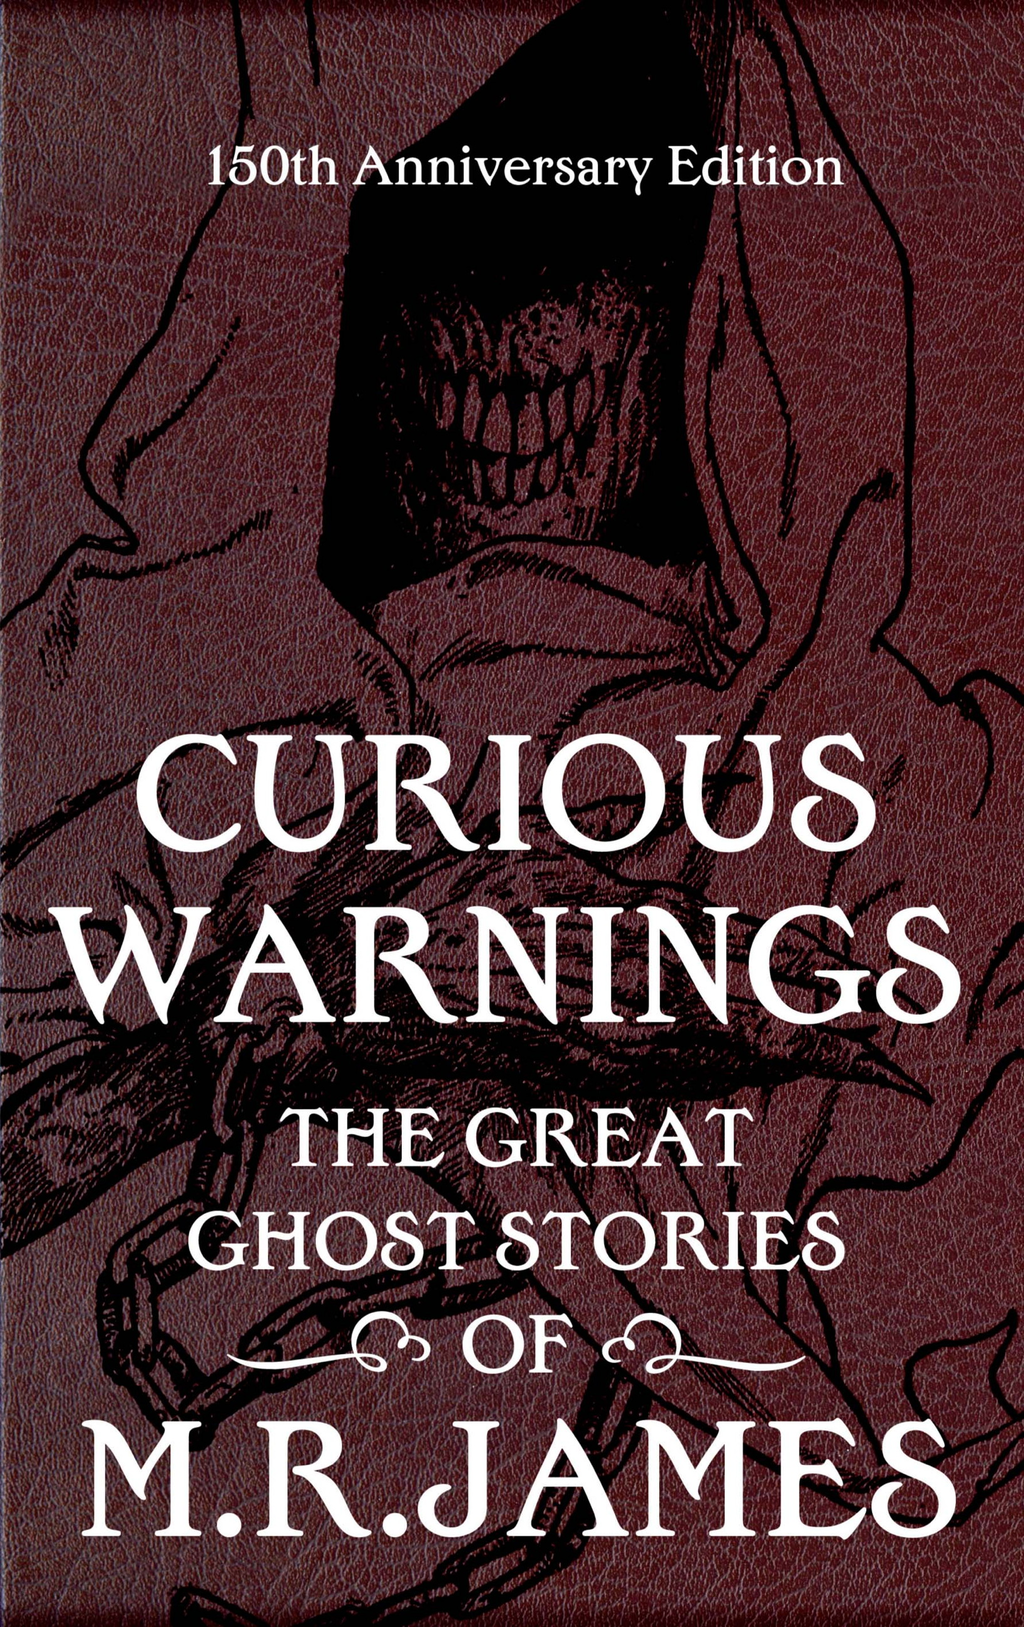 Curious Warnings The Great Ghost Stories of M.R. James